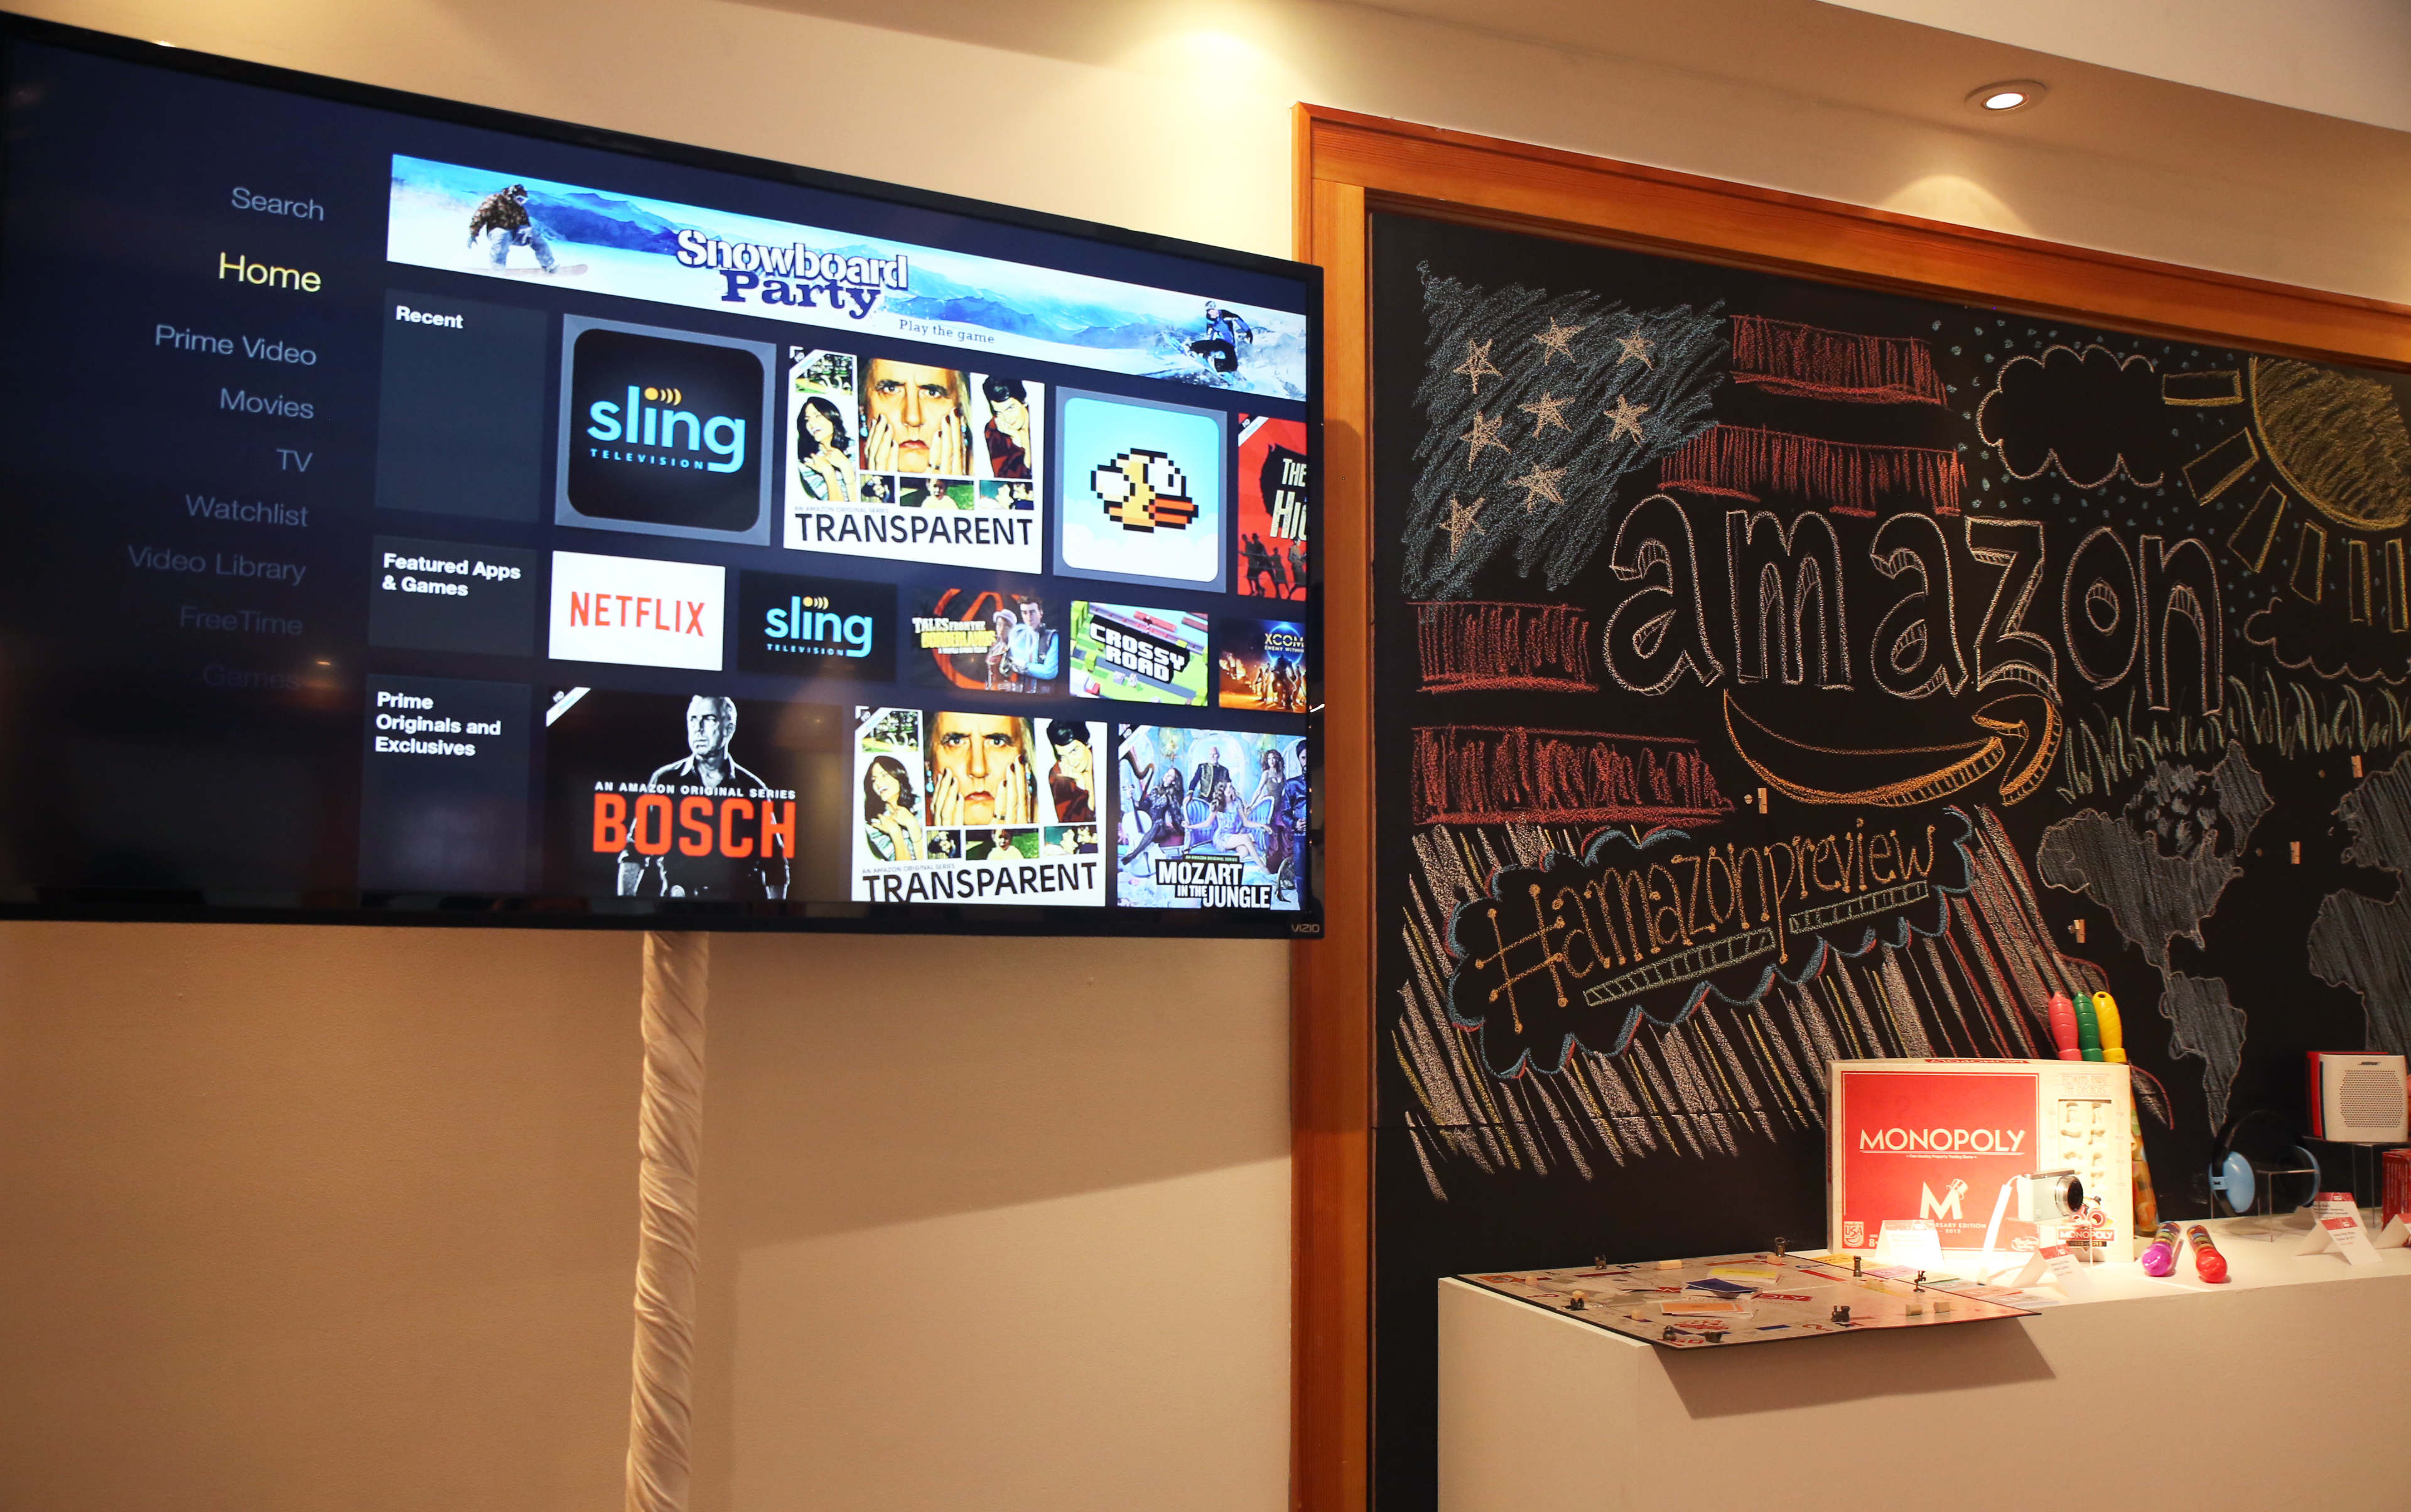 Amazon adds single sign-on for Fire TV | TechCrunch